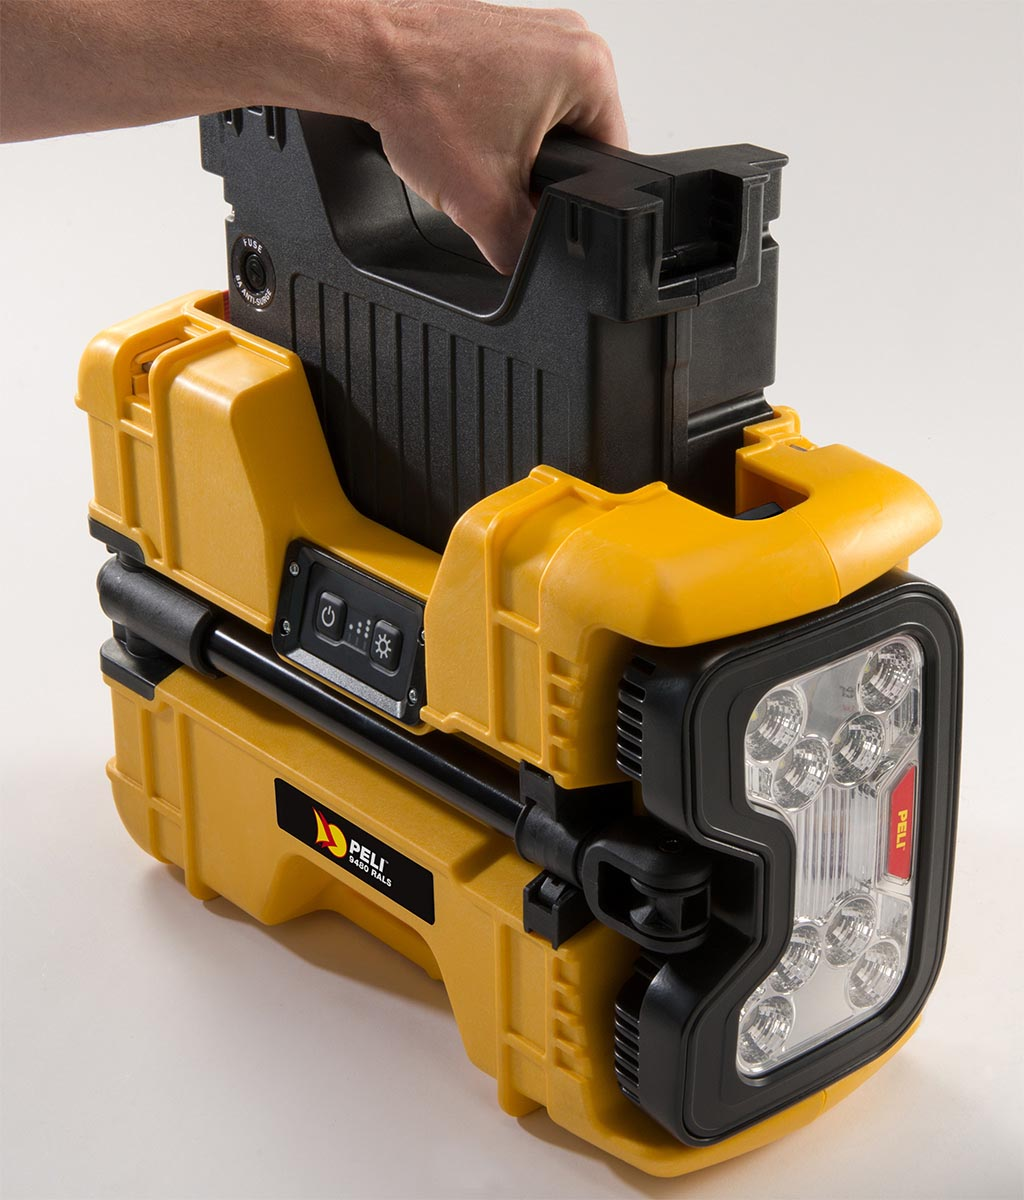 peli 9480 led spot light battery rals